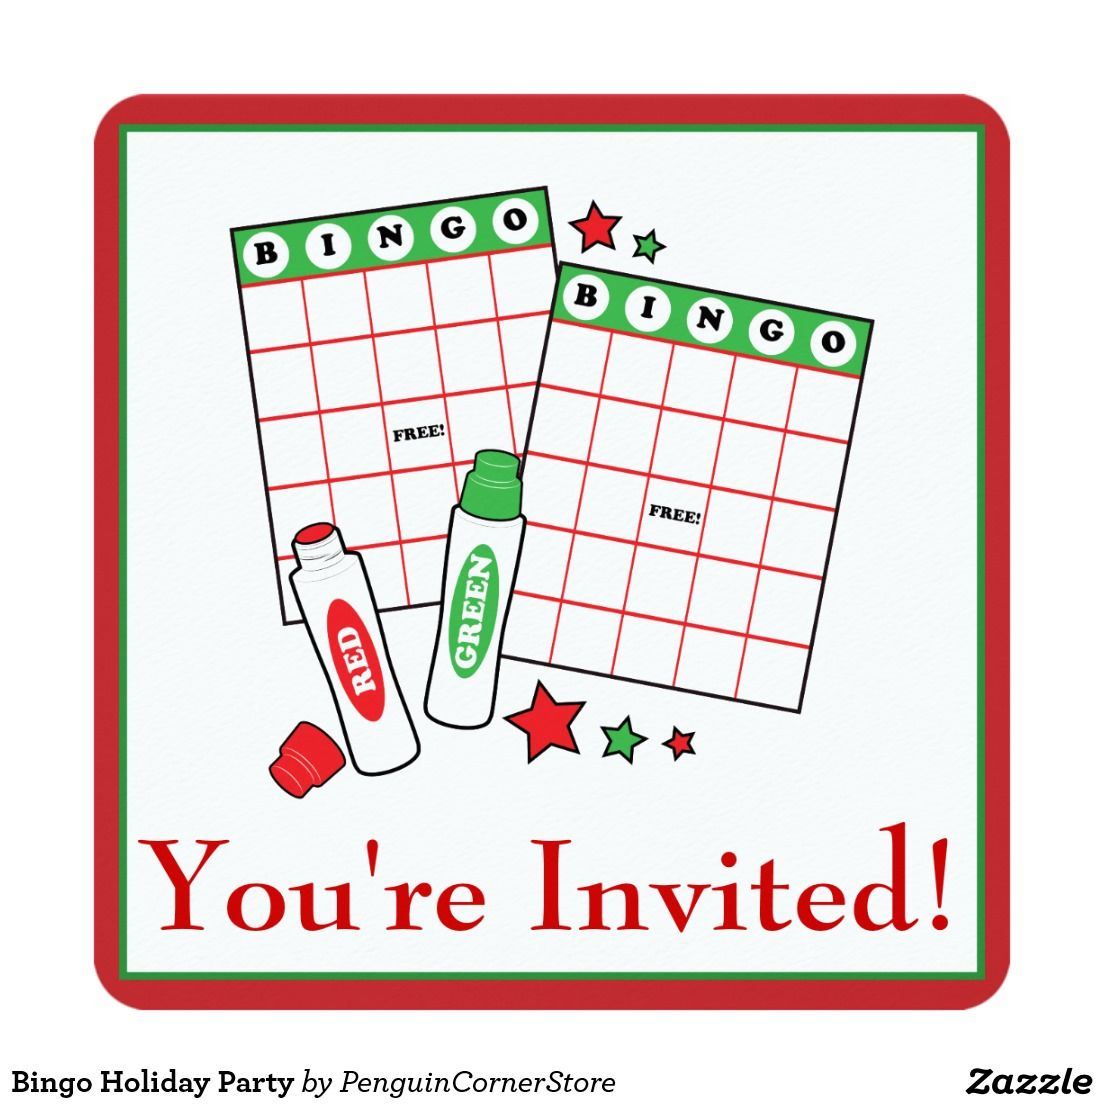 Bingo Holiday Party Card | Our Recently Sold Designs | Pinterest ...